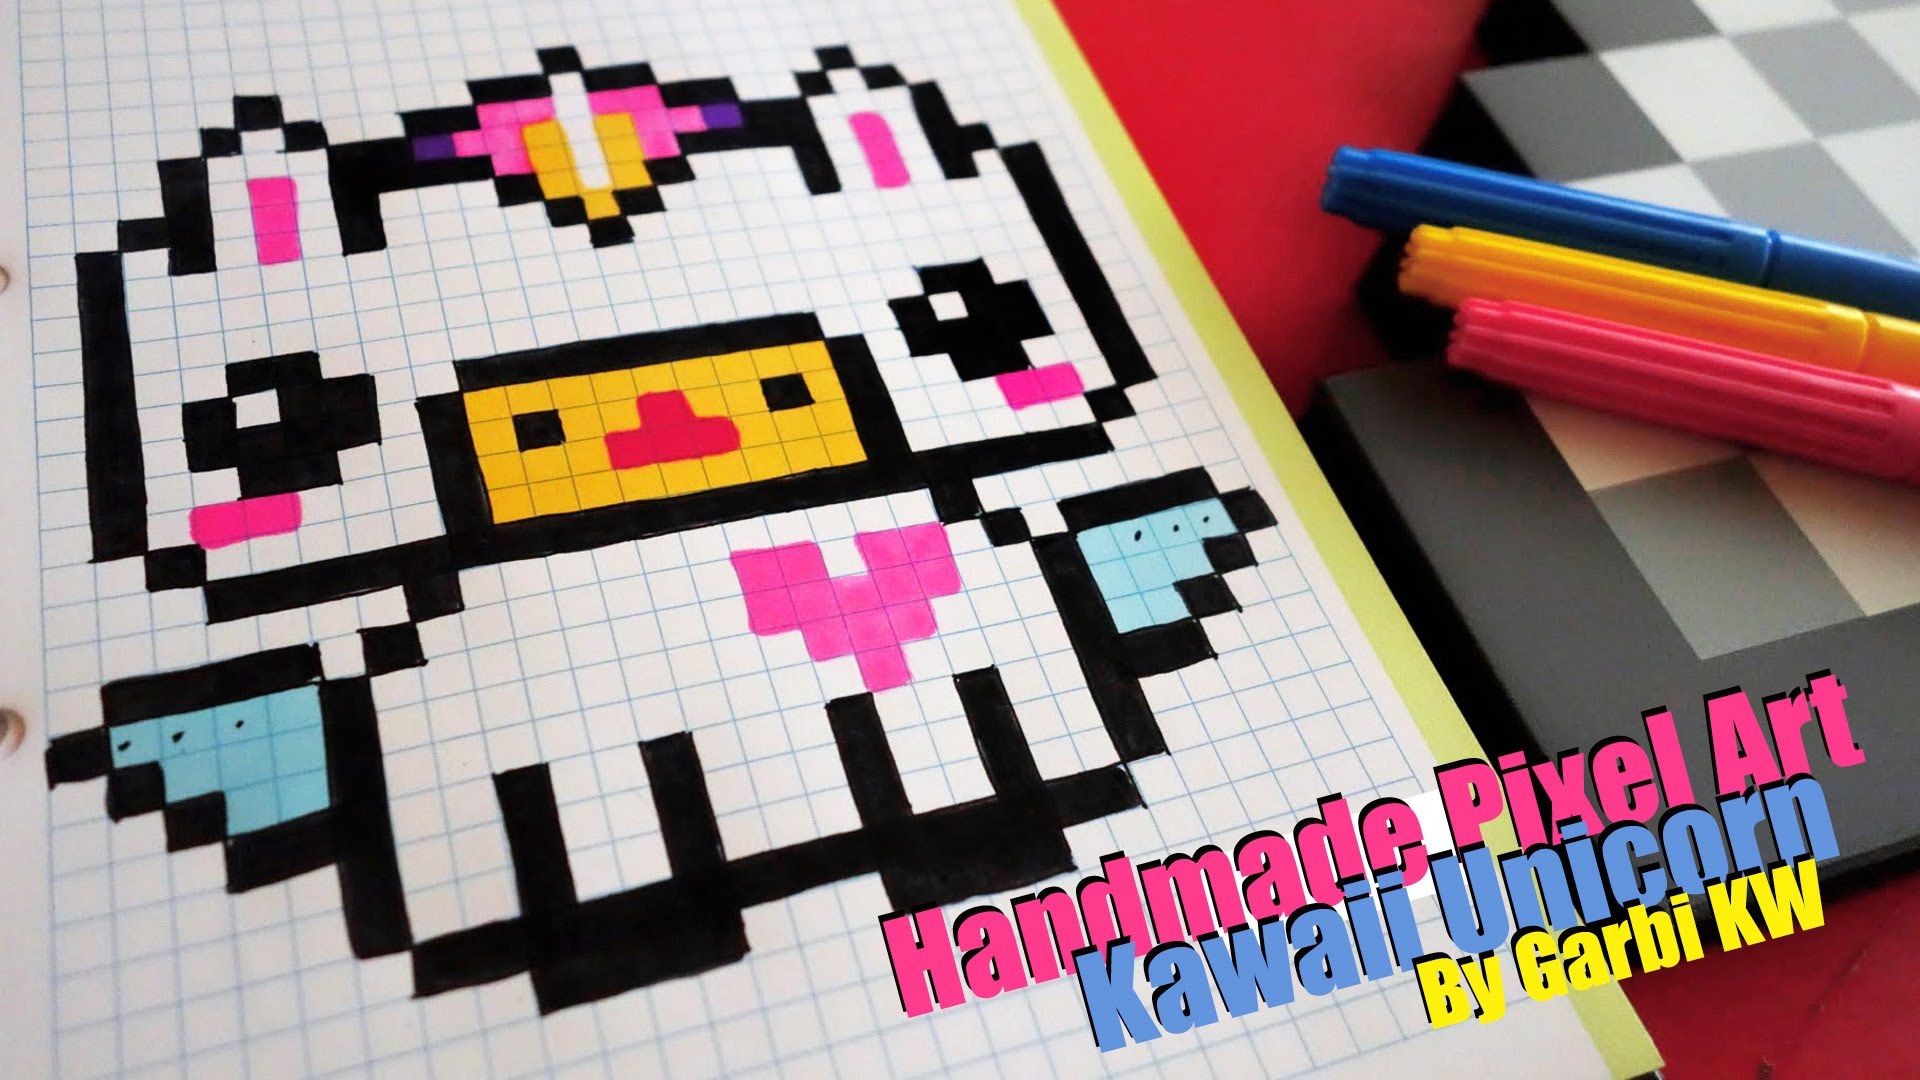 Drawn pixel art garbi kw YouTube Pixel by Kawaii KW